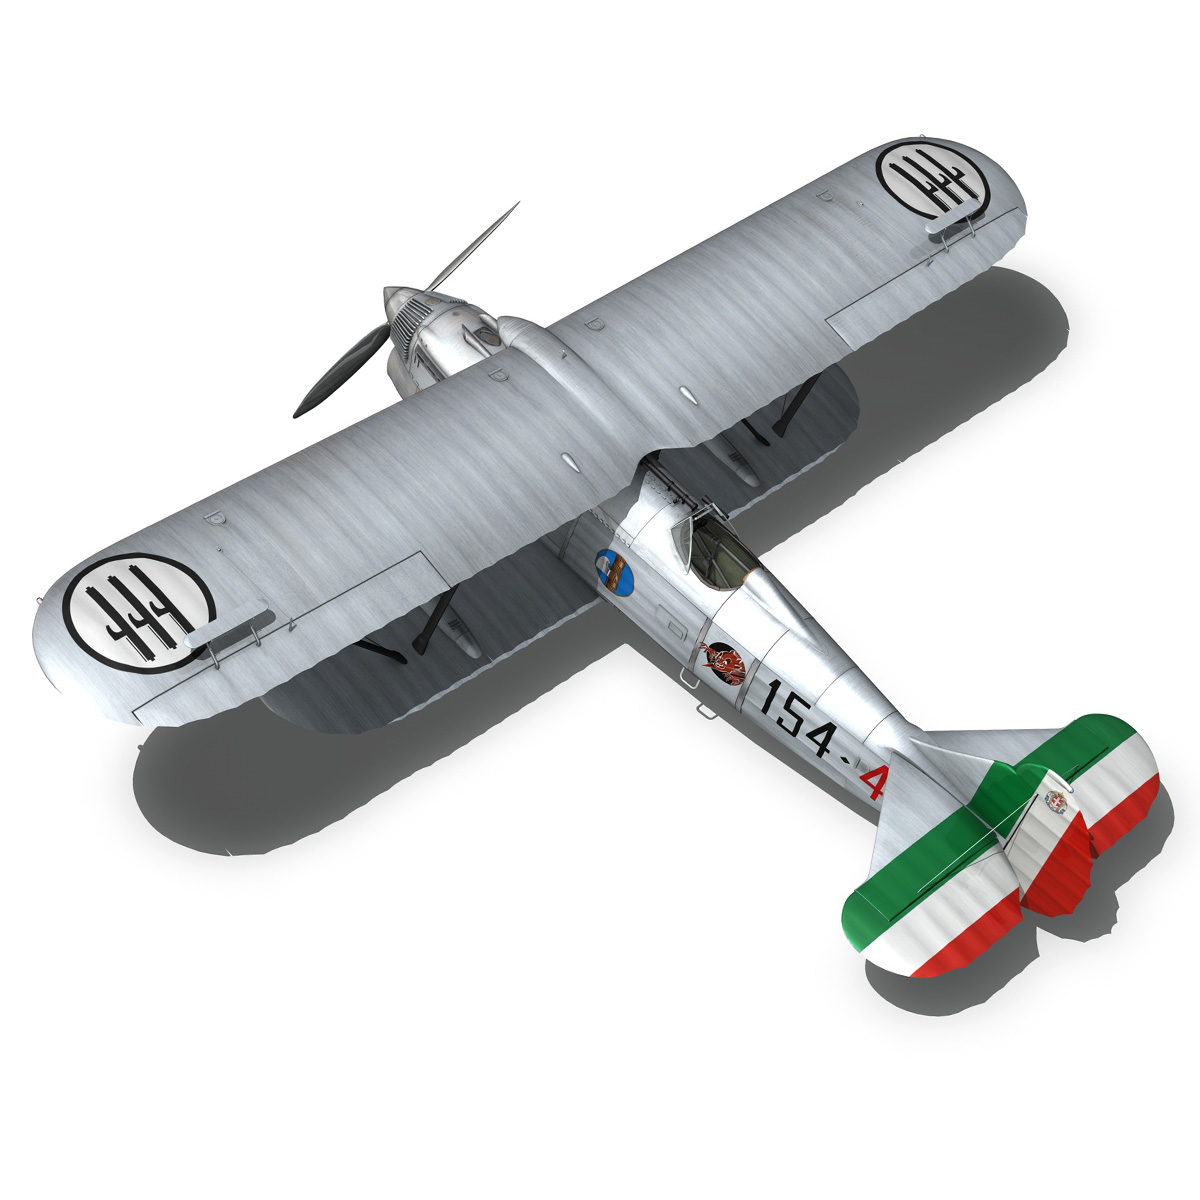 fiat cr.32 – italy airforce – 154 squadriglia 3d model fbx c4d lwo obj 268140